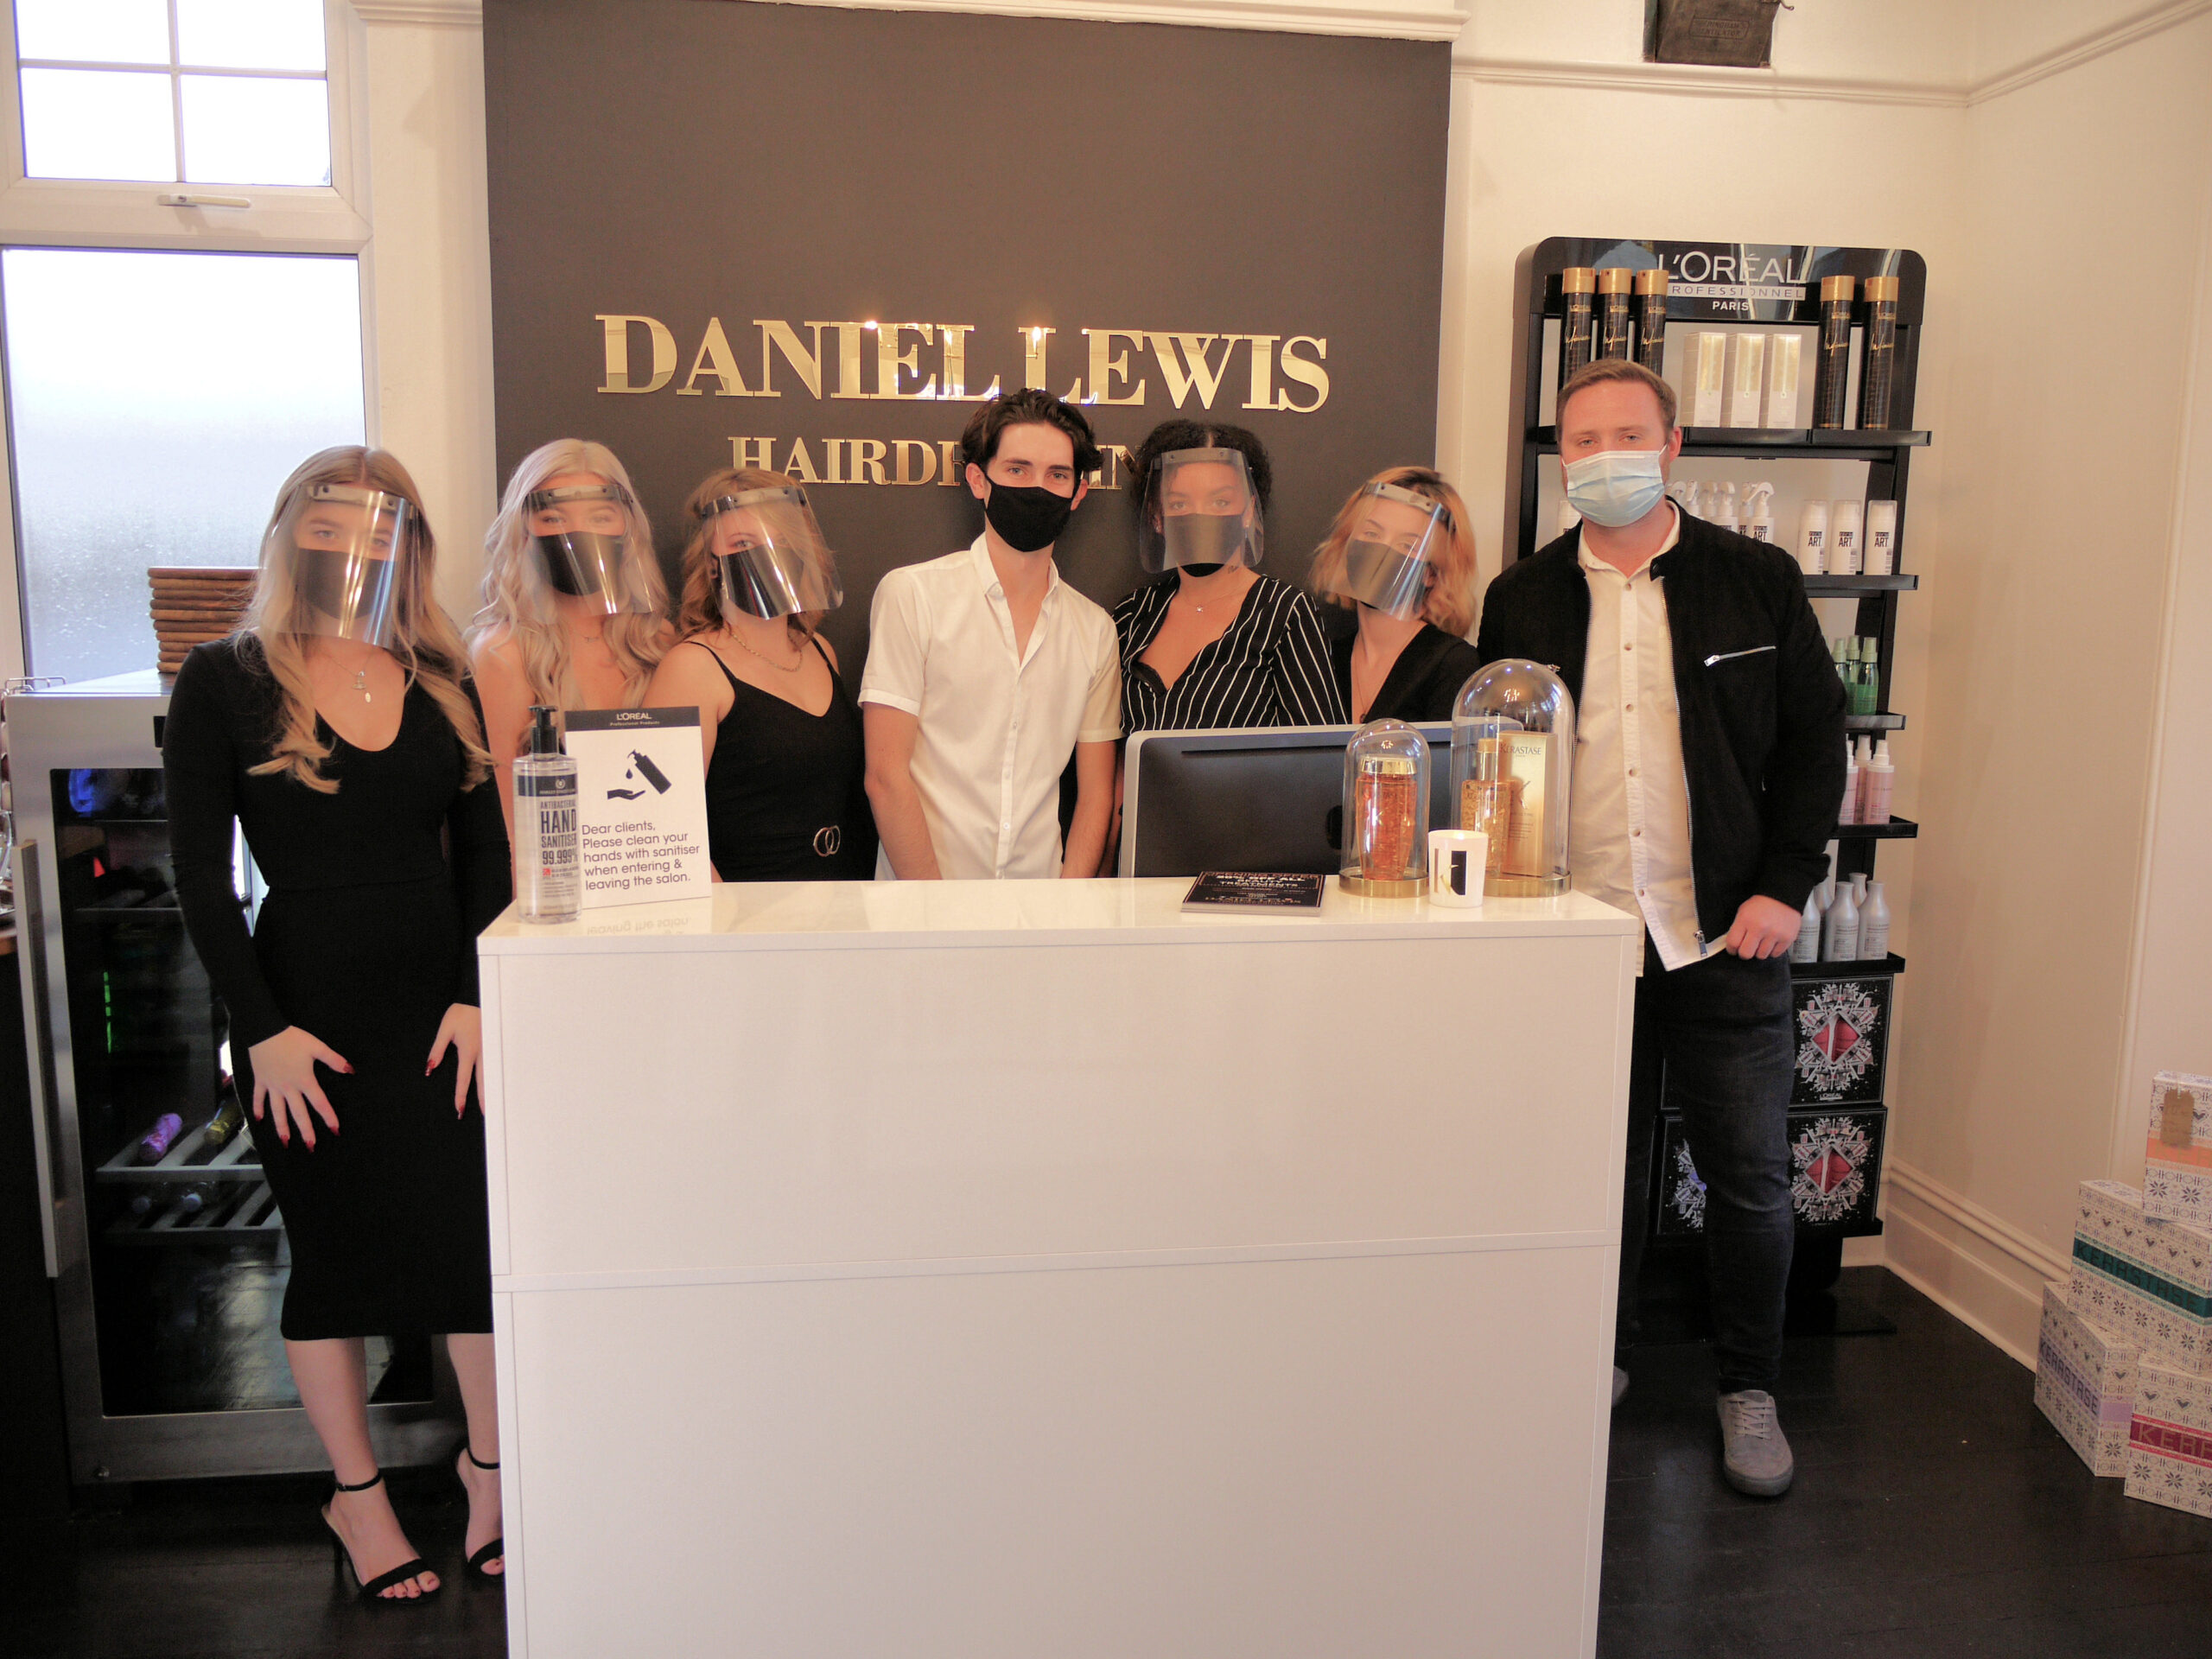 Daniel Lewis Hair and Beauty